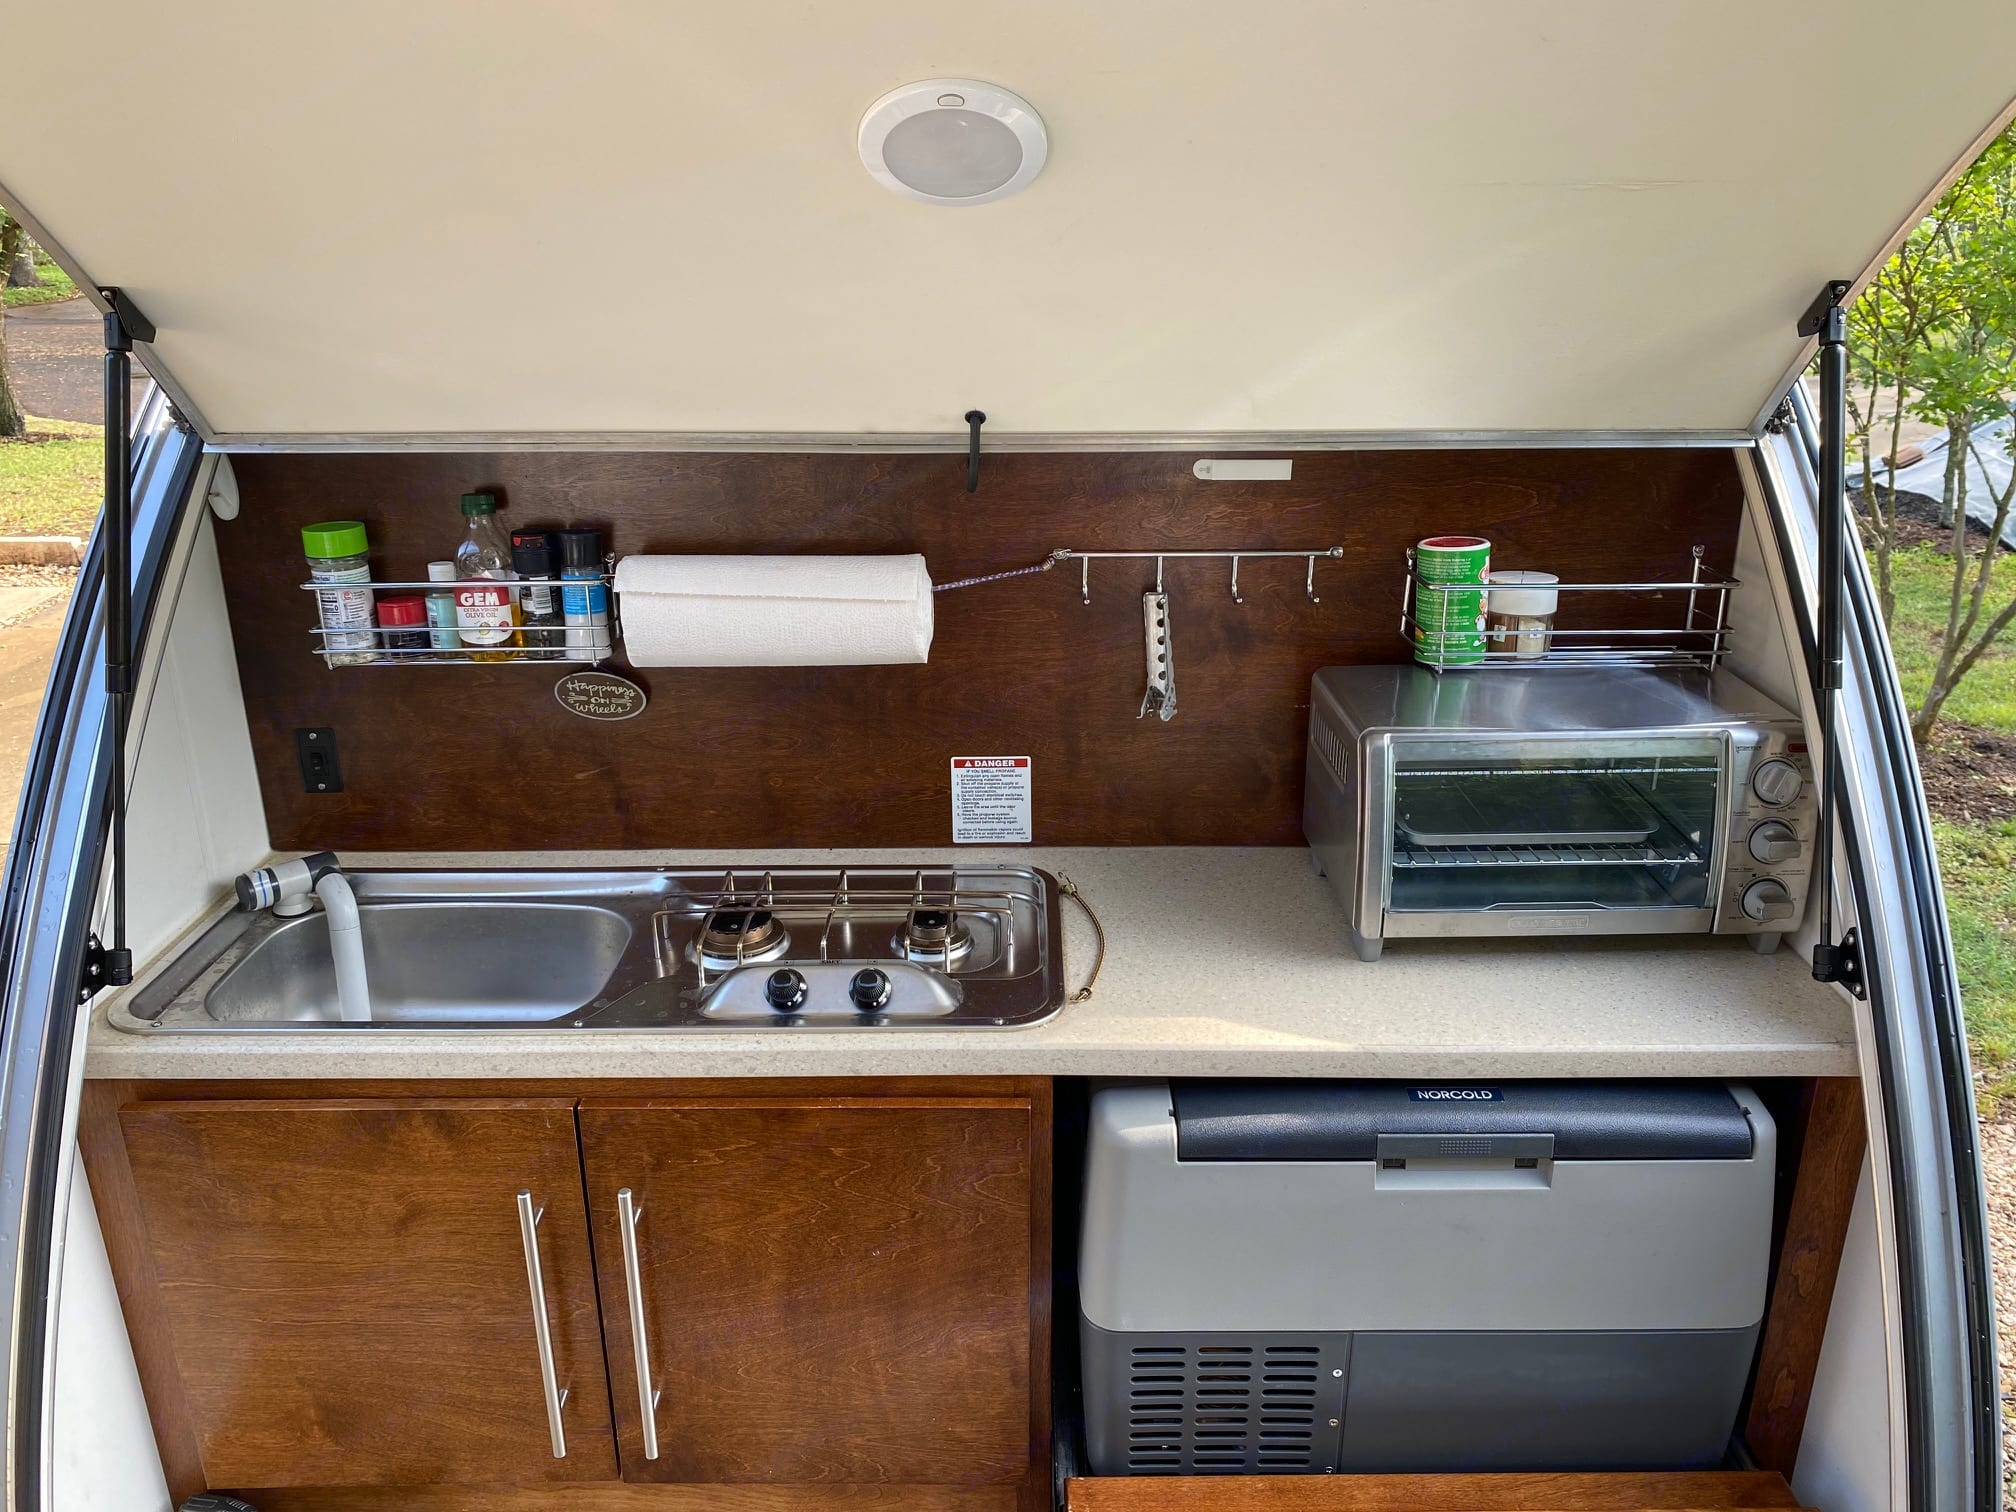 Sink with 5 gal water tank, 2 burner propane stove top, toaster oven or microwave, Mini fridge. Little Guy T@G 2015